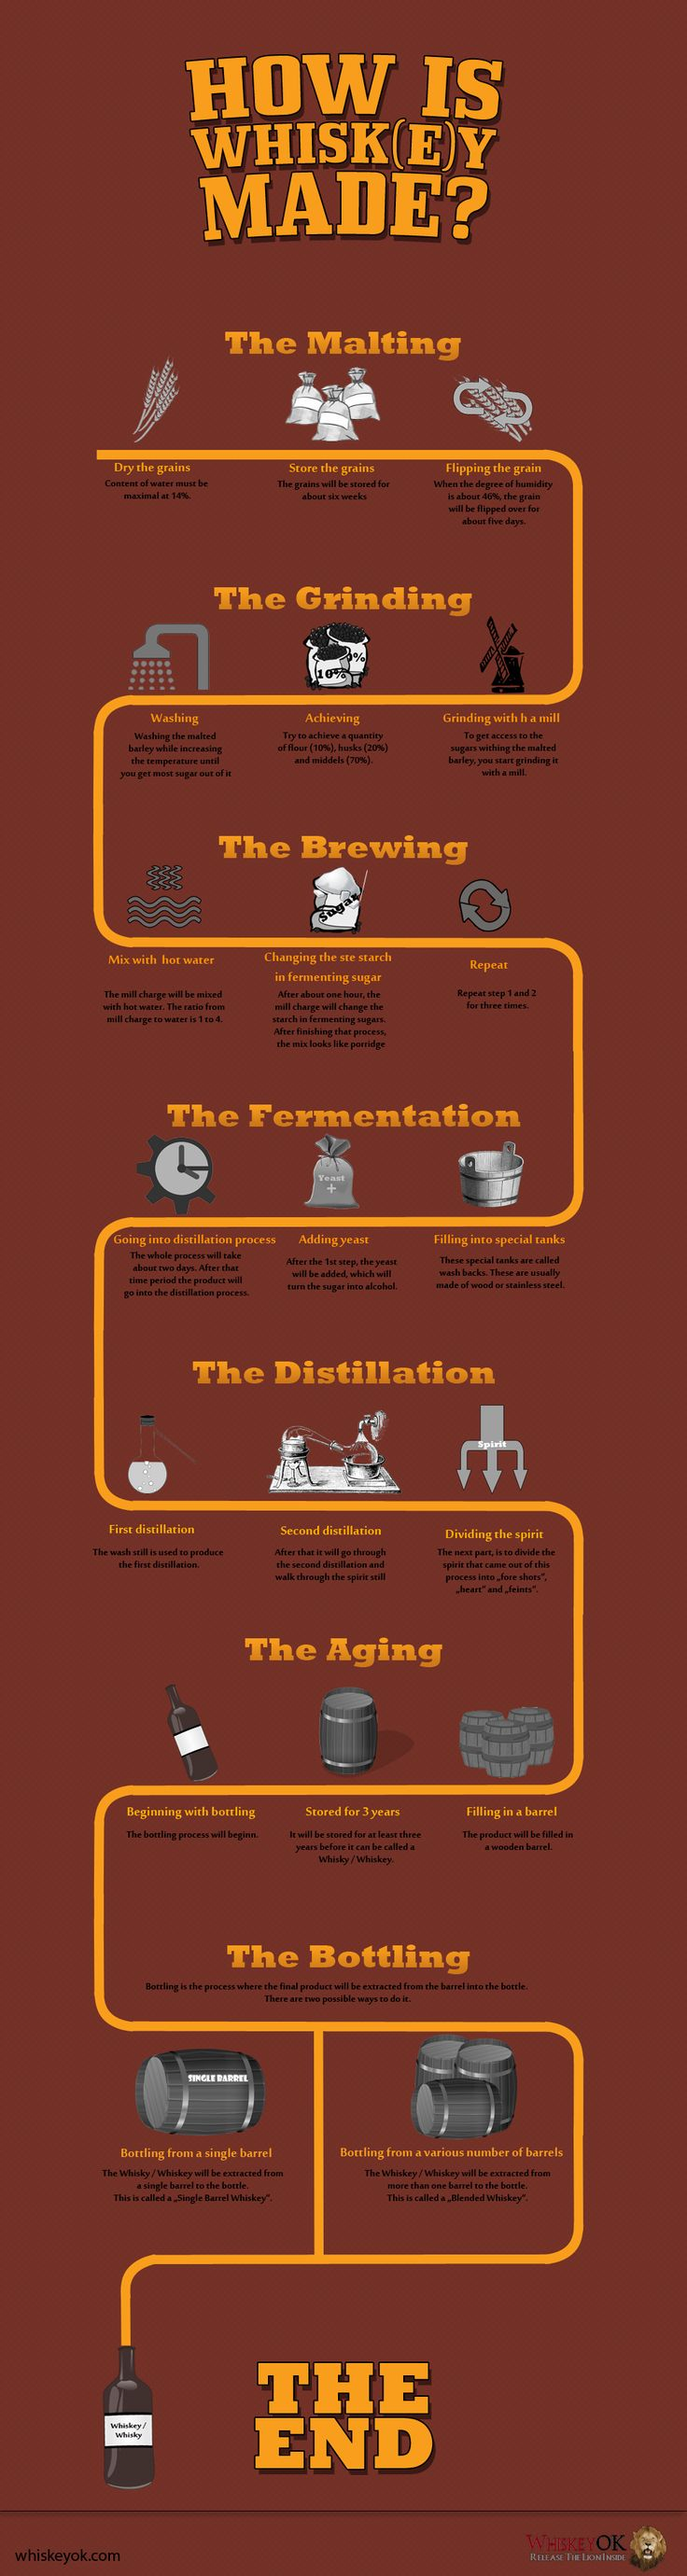 This infographic is a visual representation of the whisky / whiskey process. It is easy to understand and free to use for everybody.